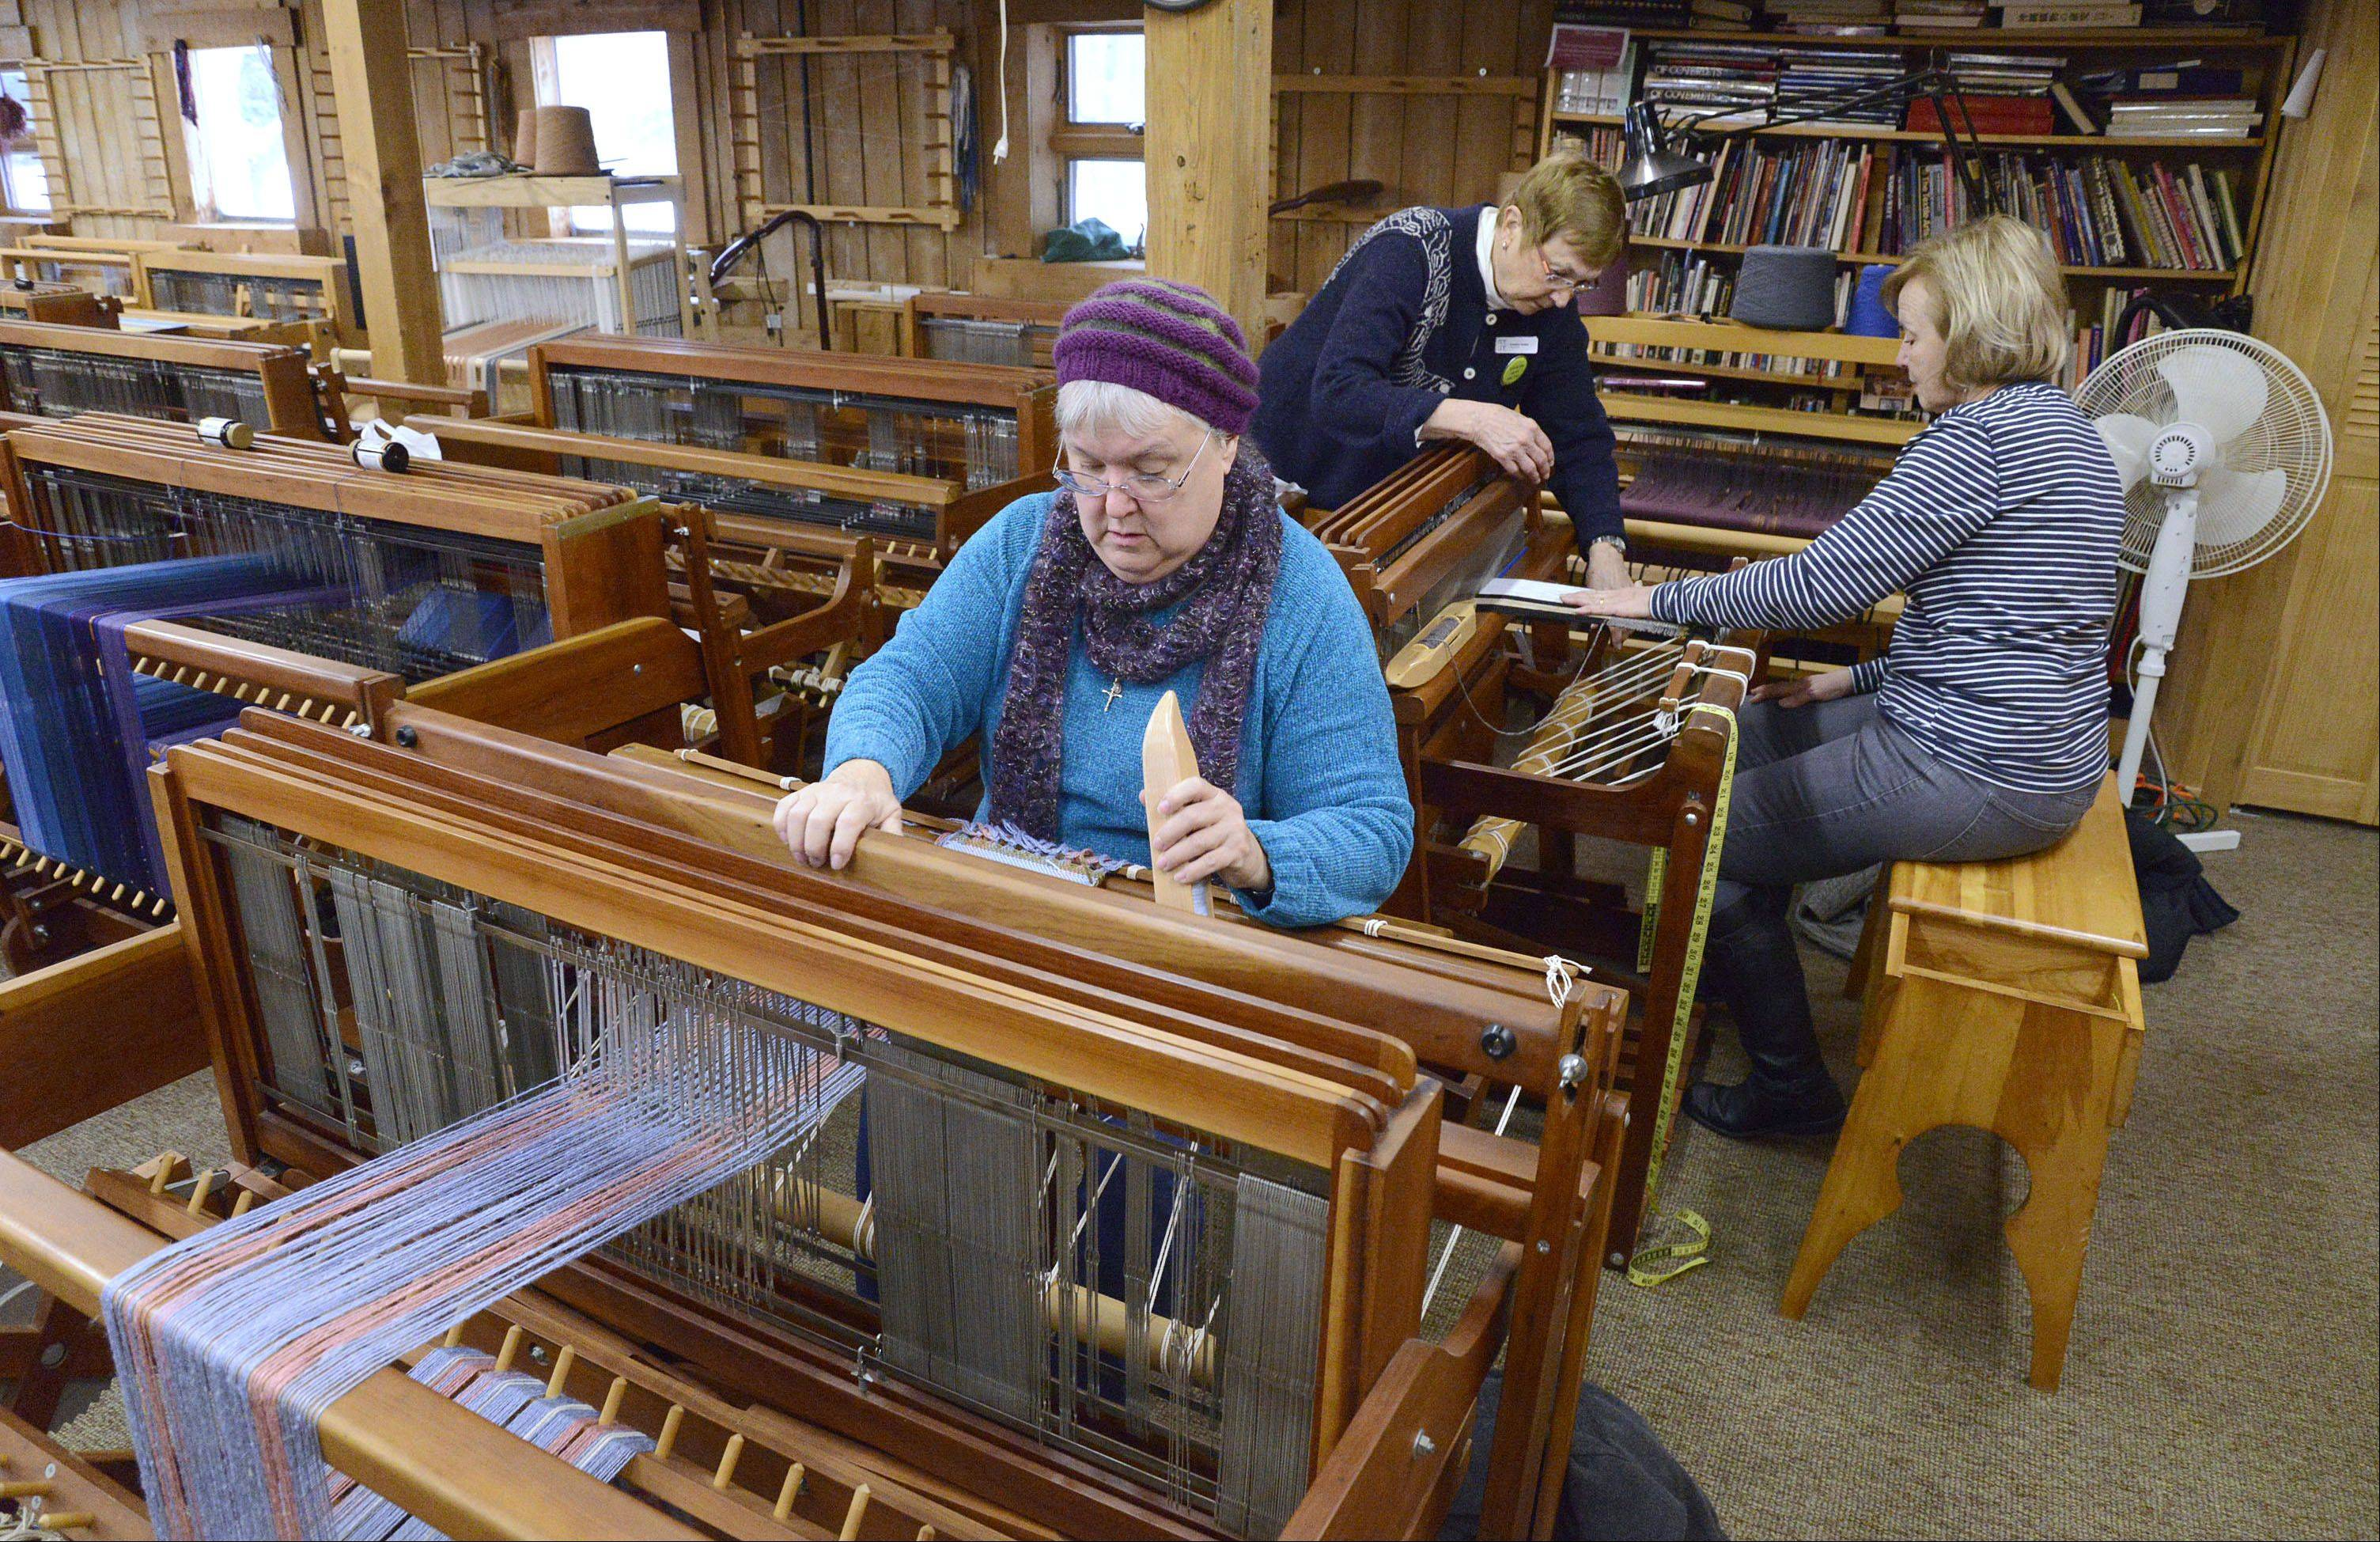 Pam Hirsch of Algonquin, front, and Ann Sutherland of Winfield learn how to weave on looms with the help of Fine Line Creative Arts Center volunteer Louise Ioder of Elburn Saturday. Ioder has been a volunteer at the St. Charles center for close to 15 years.